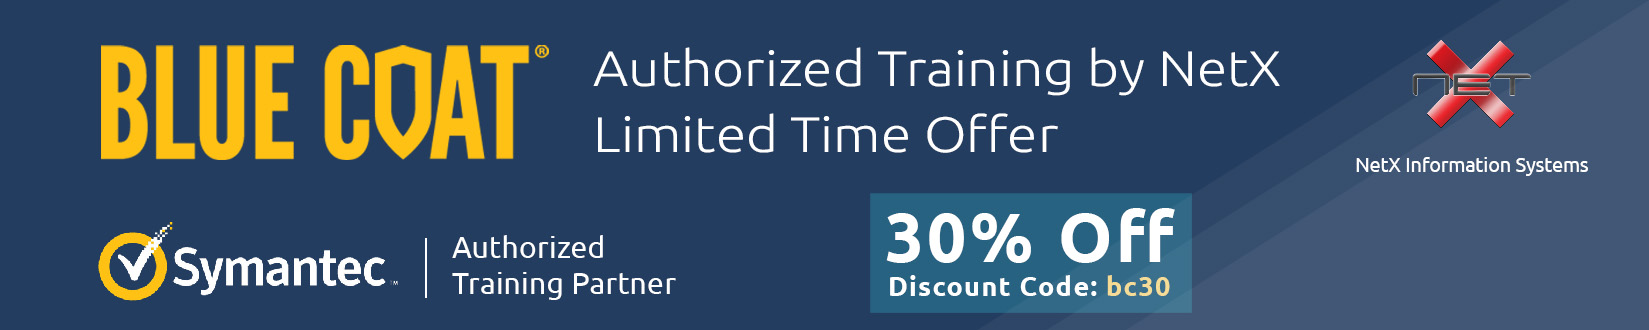 symantec blue coat training limited time offer 30% off by NetX